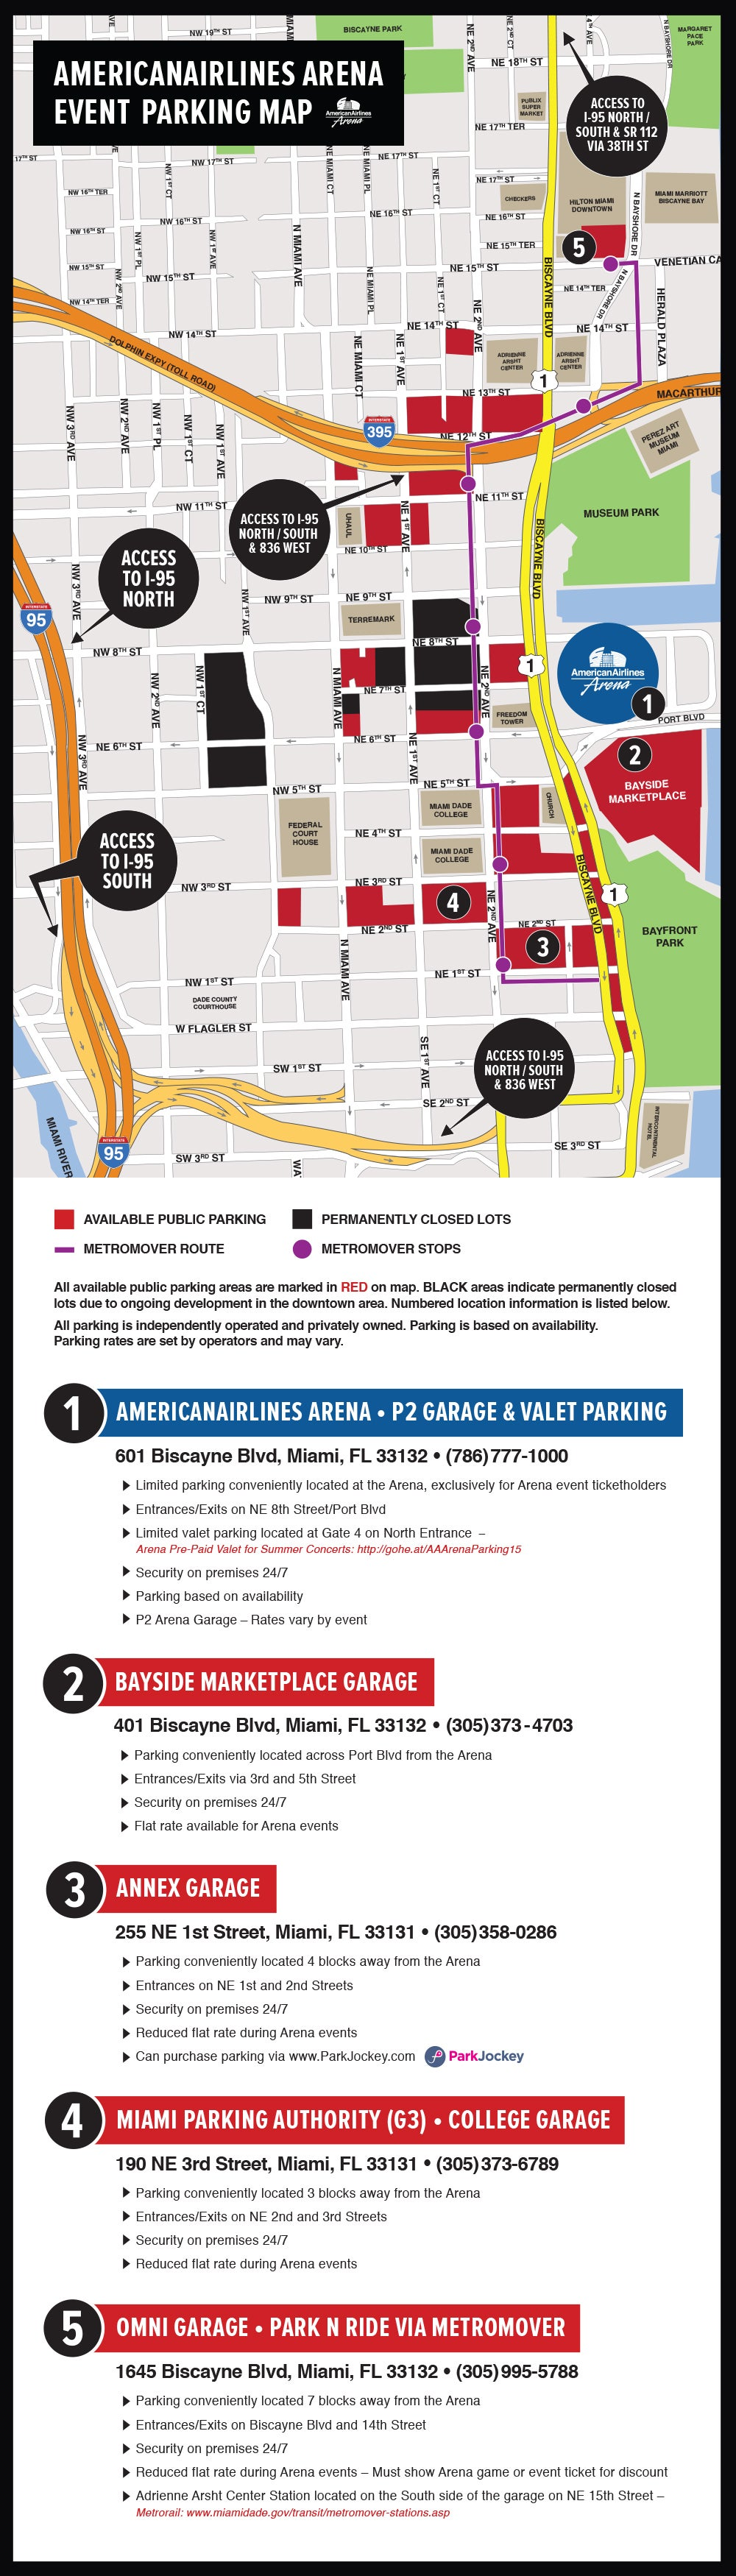 directions & parking | americanairlines arena